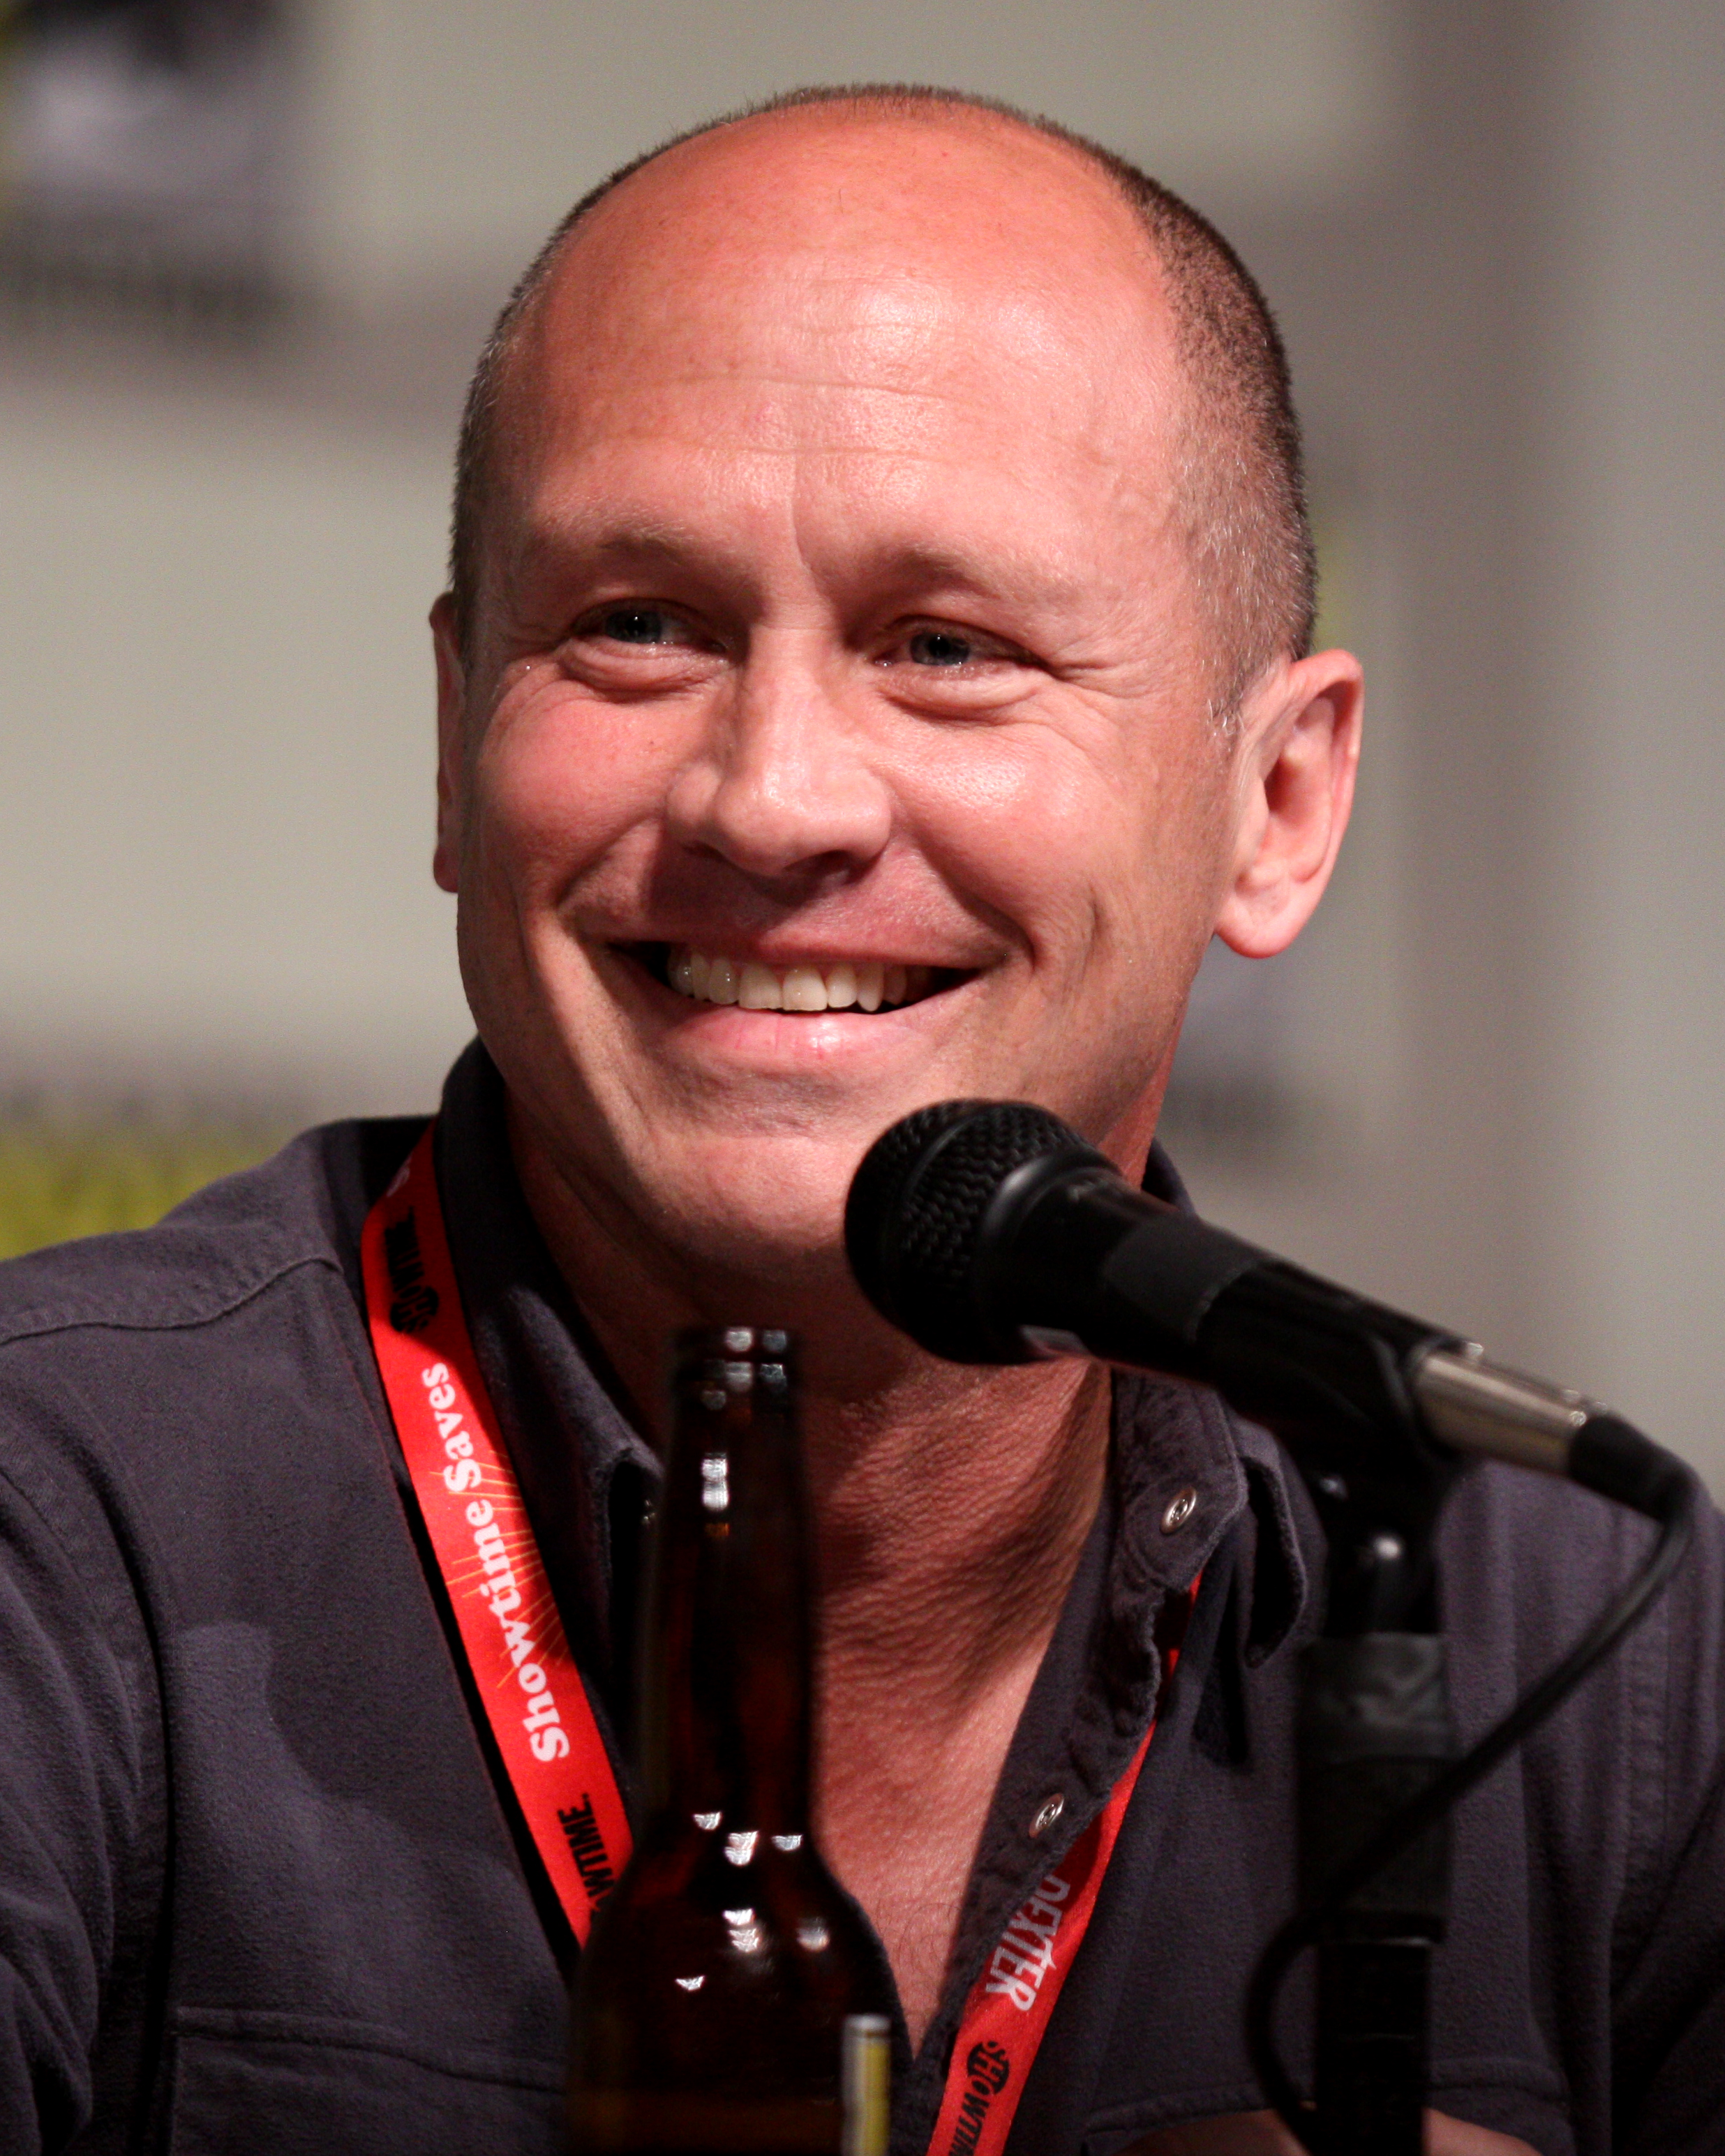 Mike Judge at the [[San Diego Comic-Con International]] in July 2011